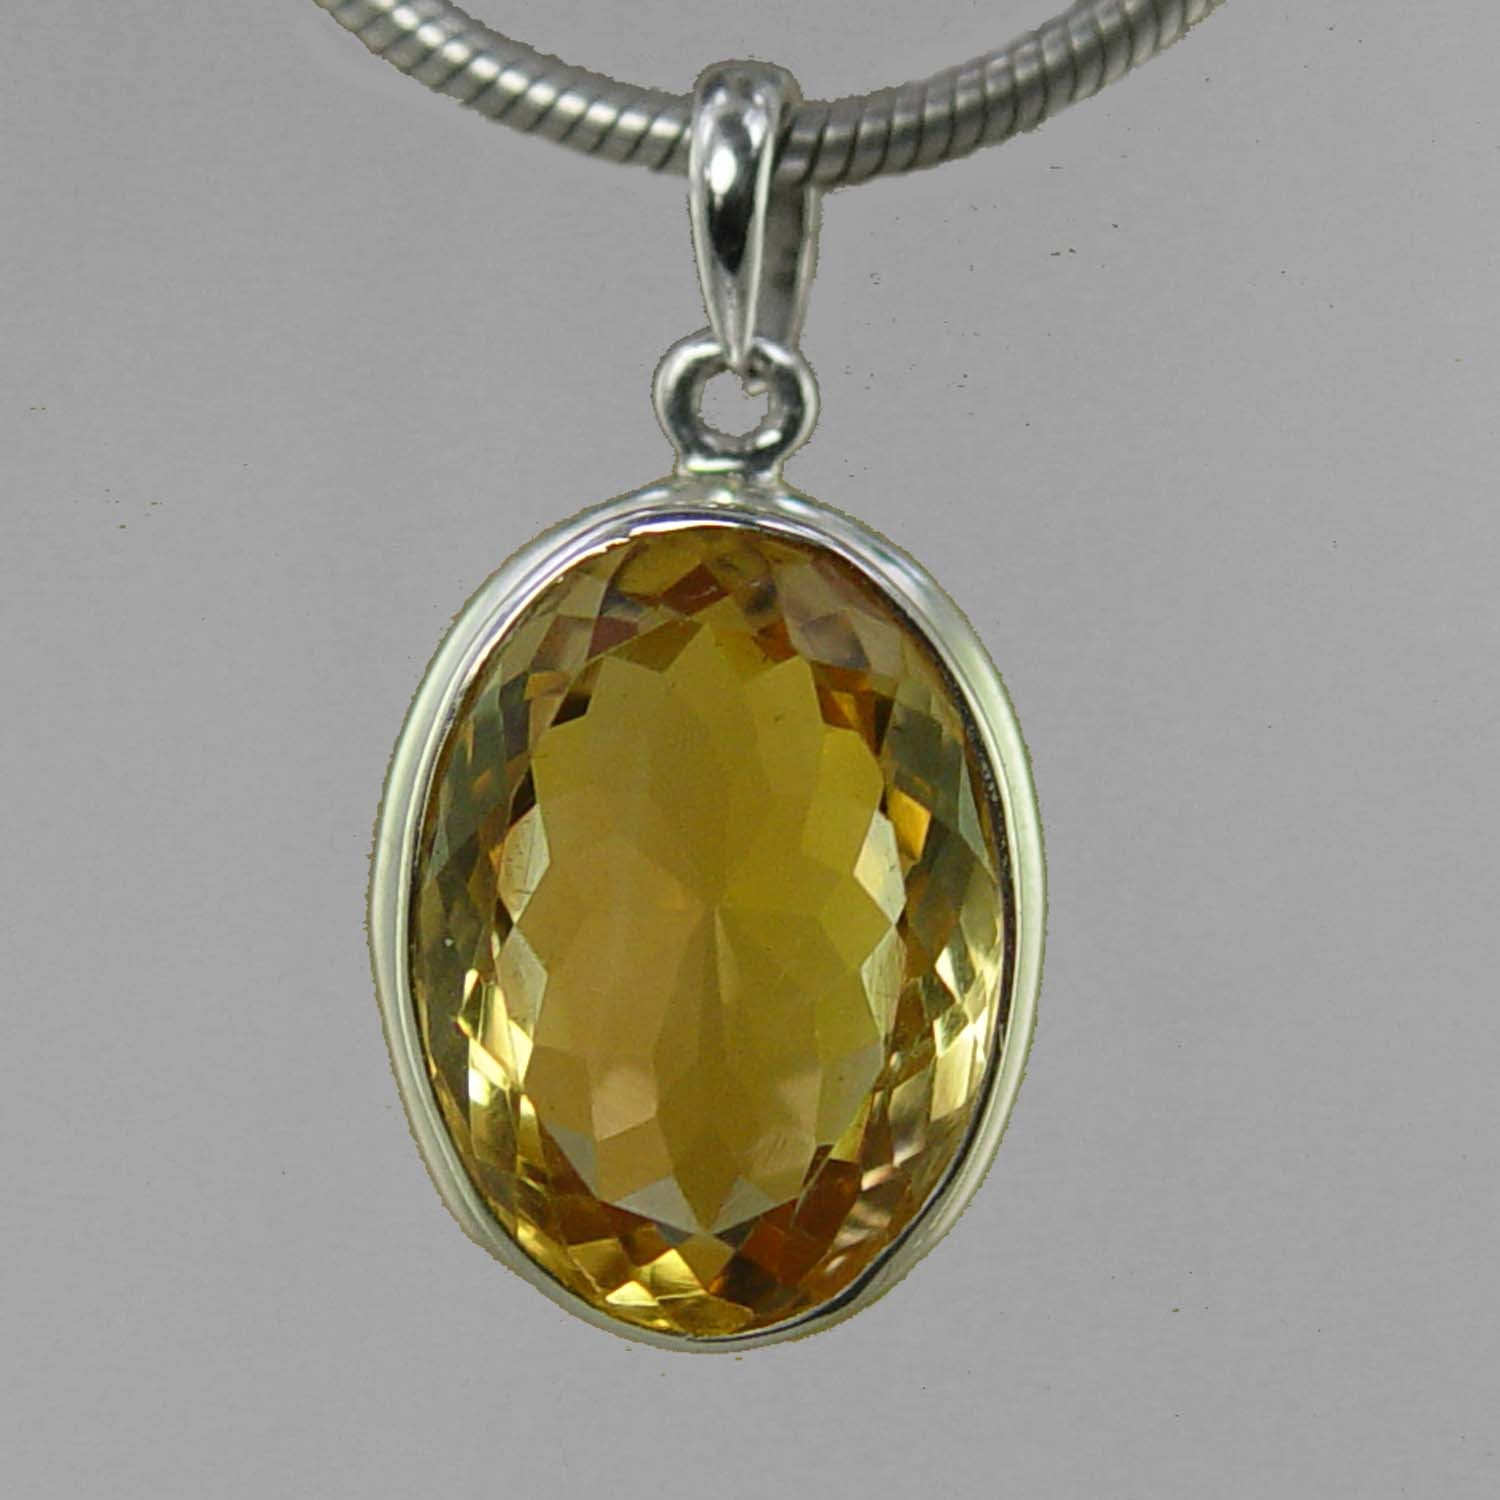 Citrine 9 ct Oval Bezel Set Sterling Silver Pendant